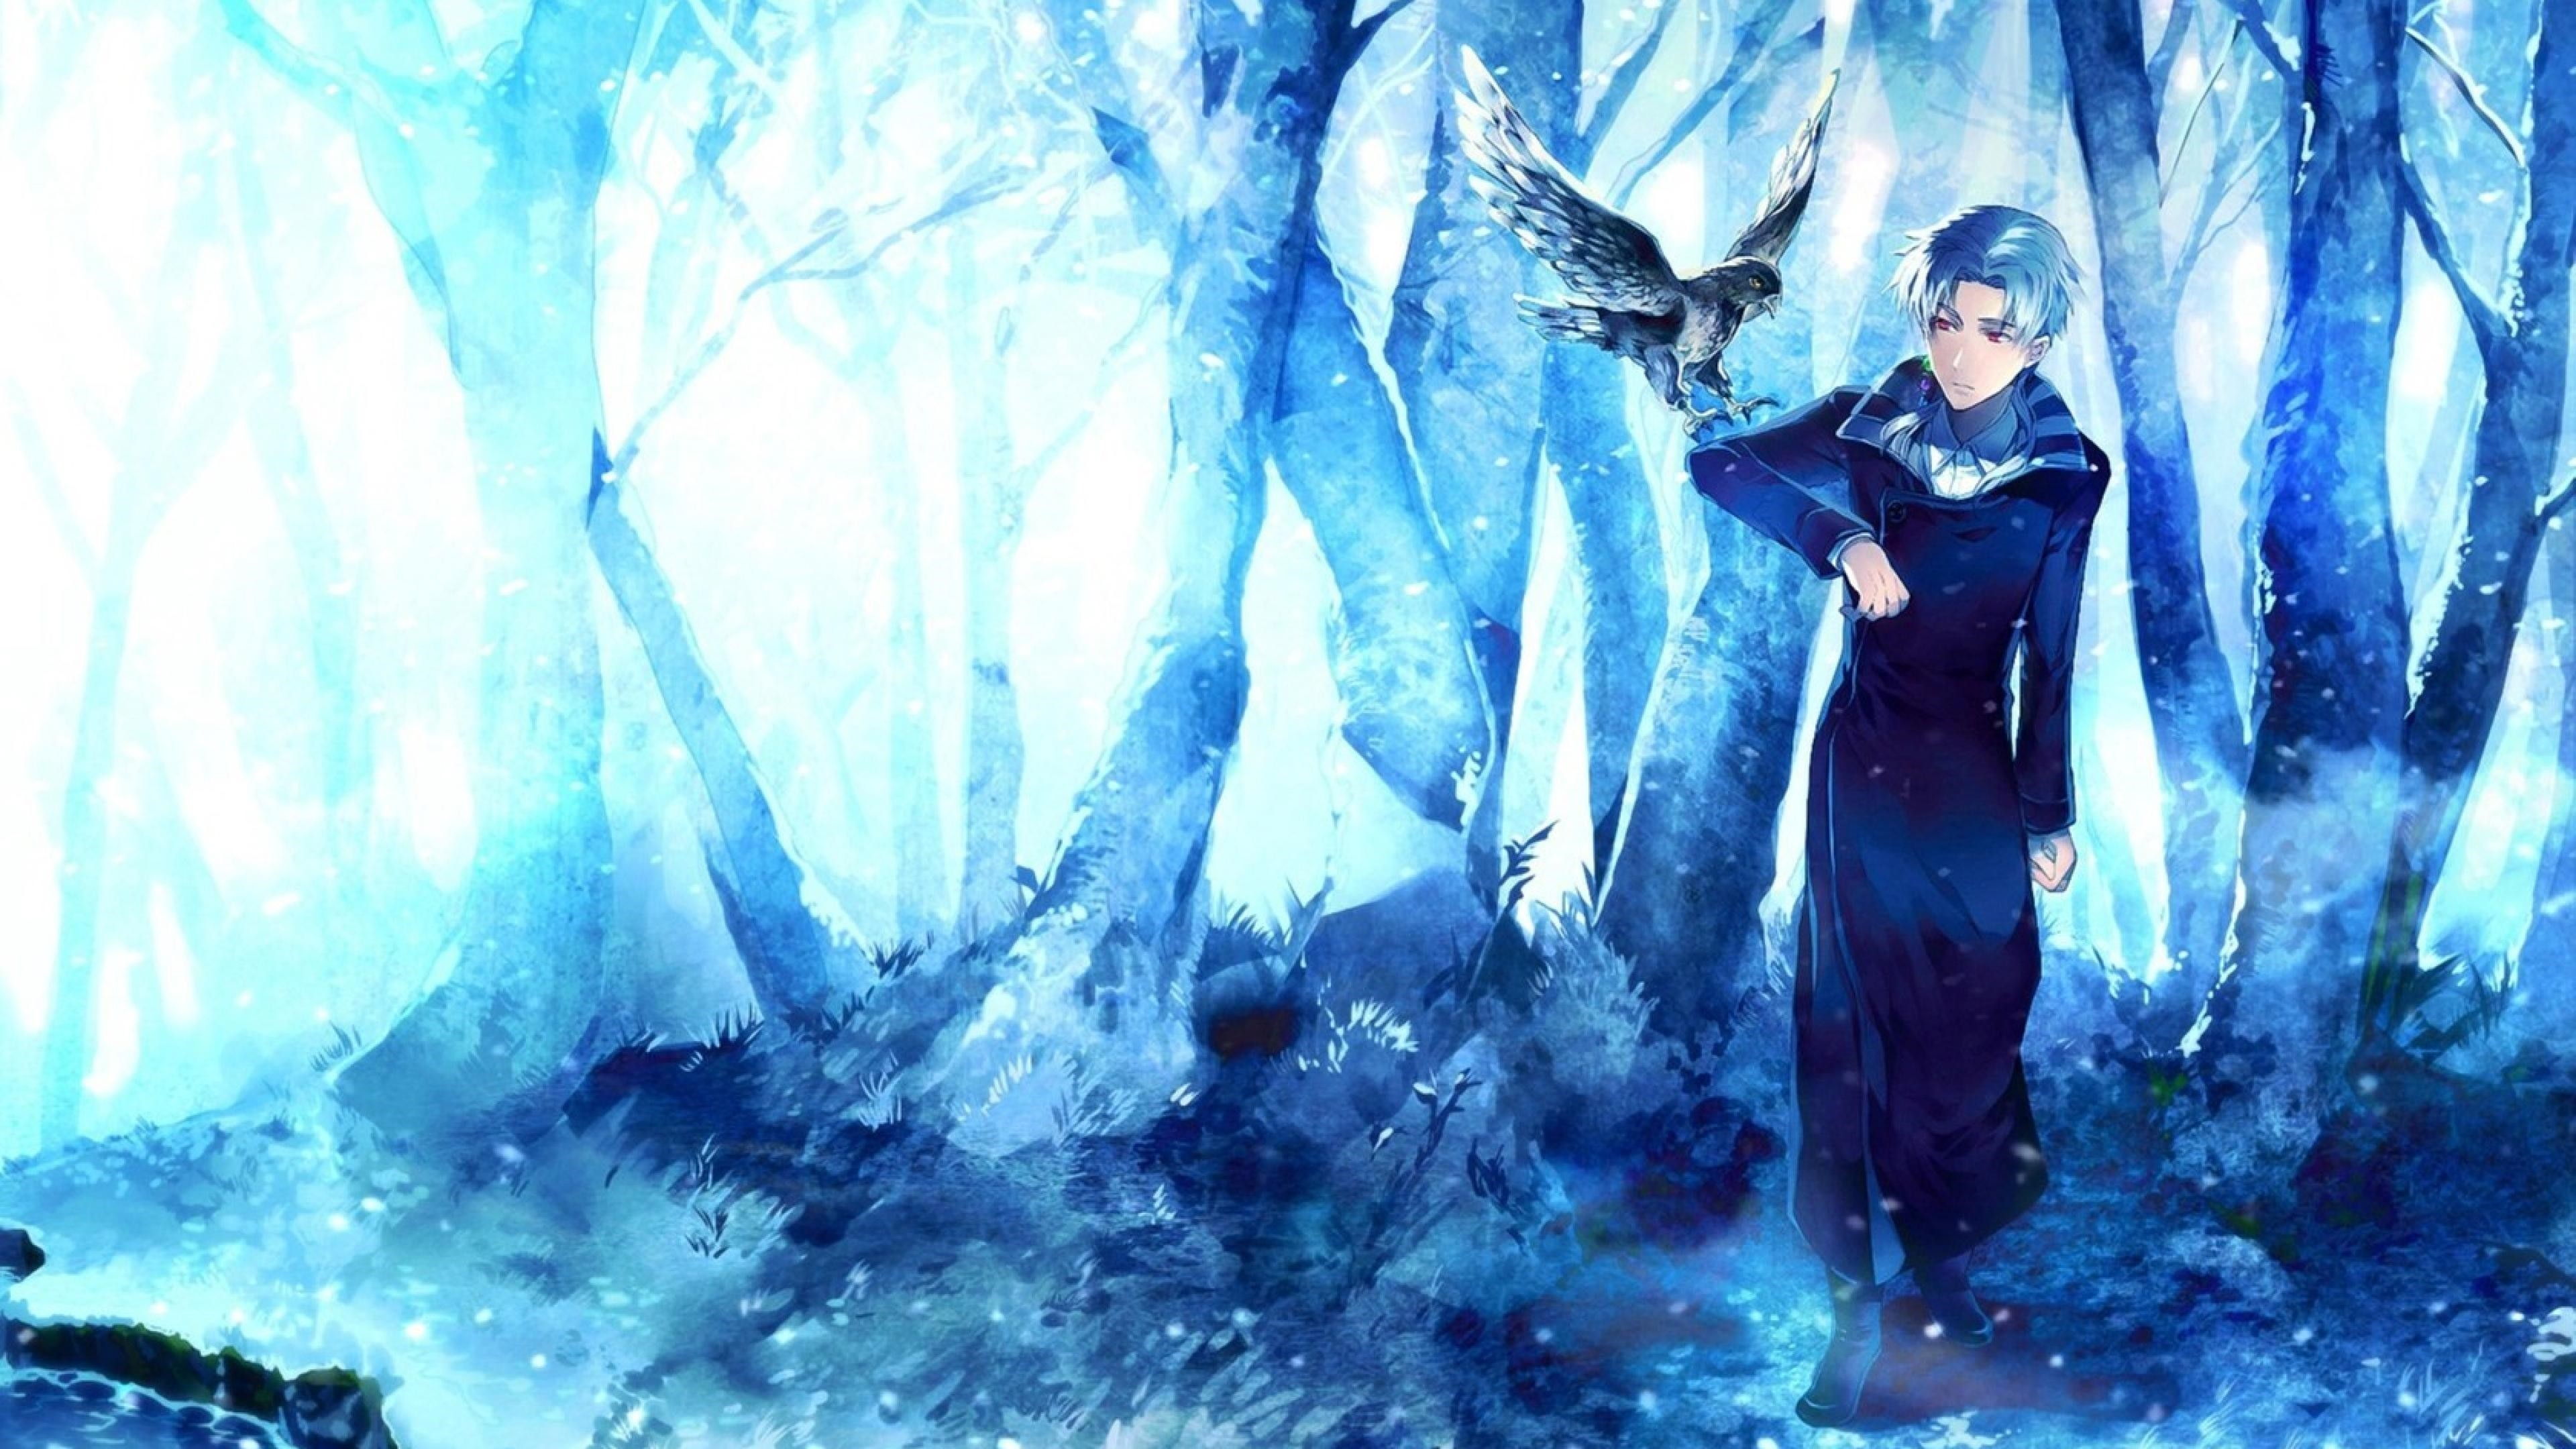 General 3840x2160 anime birds artwork fantasy art